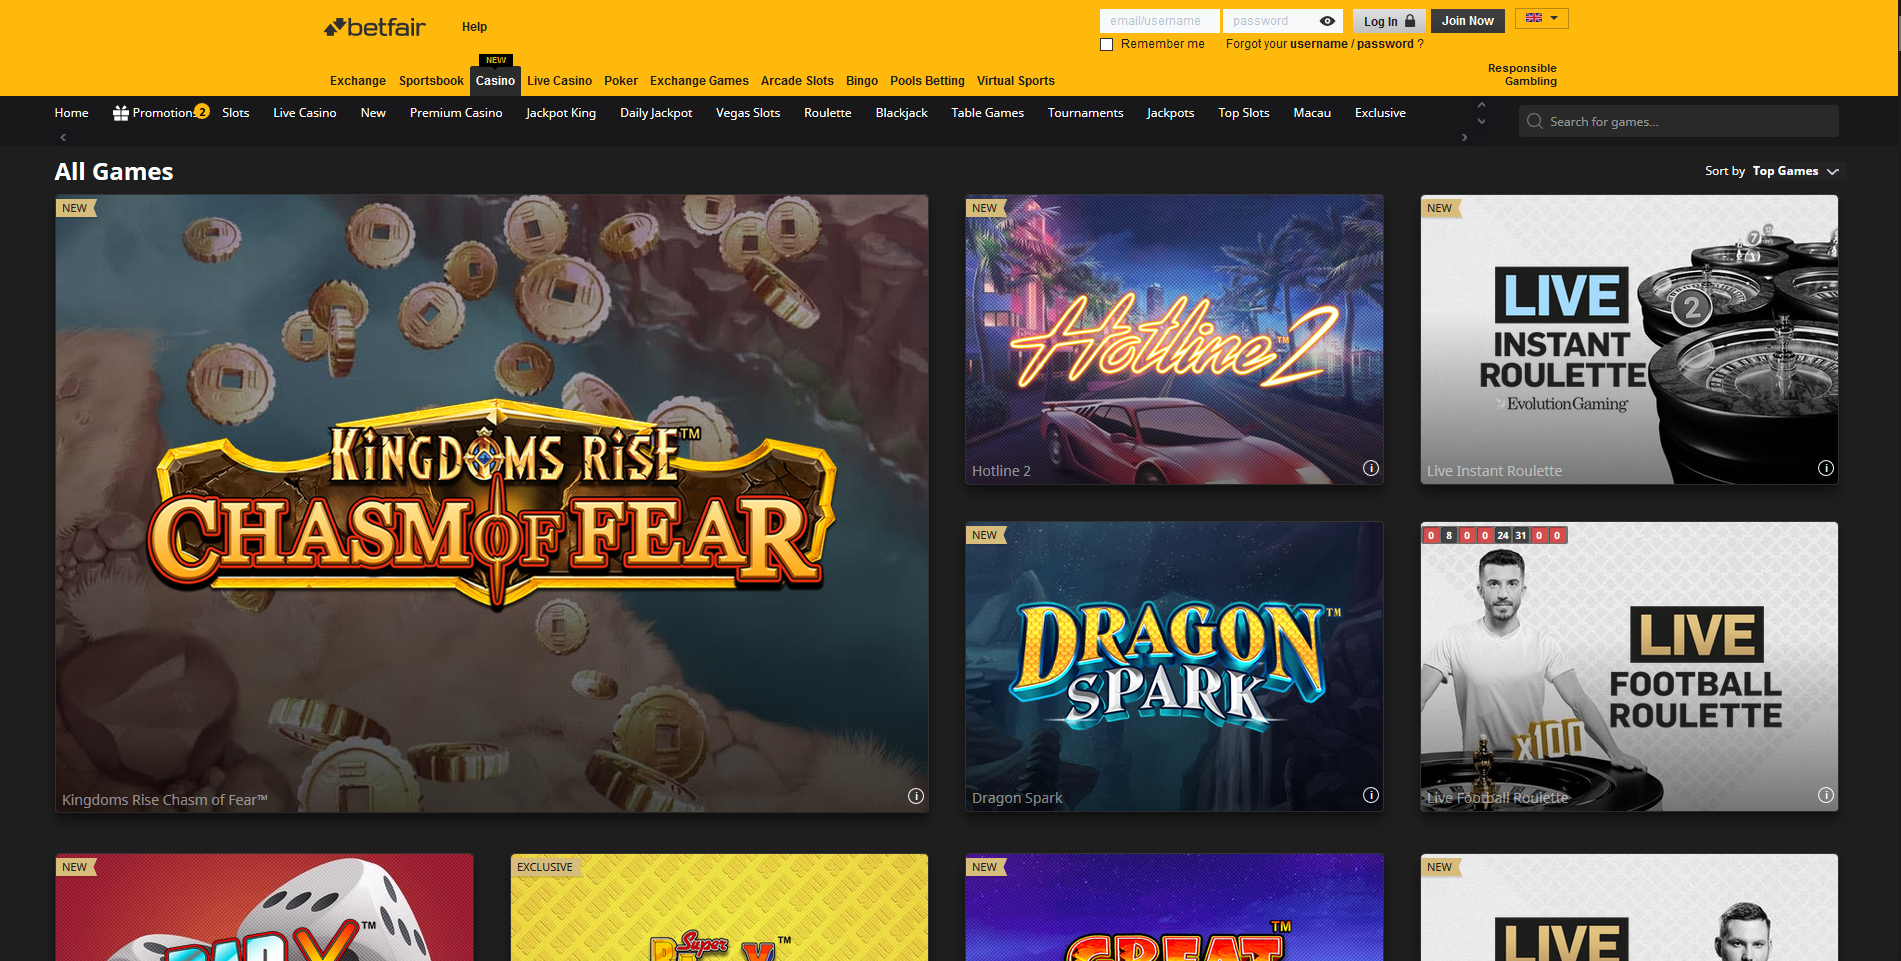 betfair kazino žaidimai games - kingdoms rise chasm of fear dragon spark live instant roulette